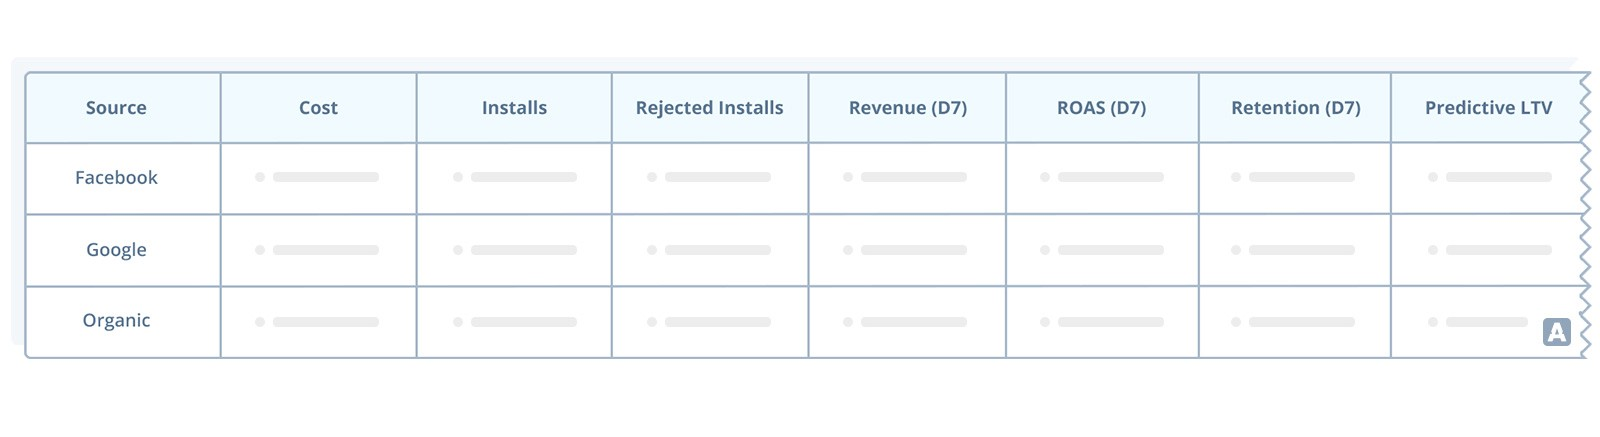 reporting table that shows data for cost, installs, rejected installs, revenue, return on ad spend, retention and predictive LTV across Facebook, Google and Organic traffic